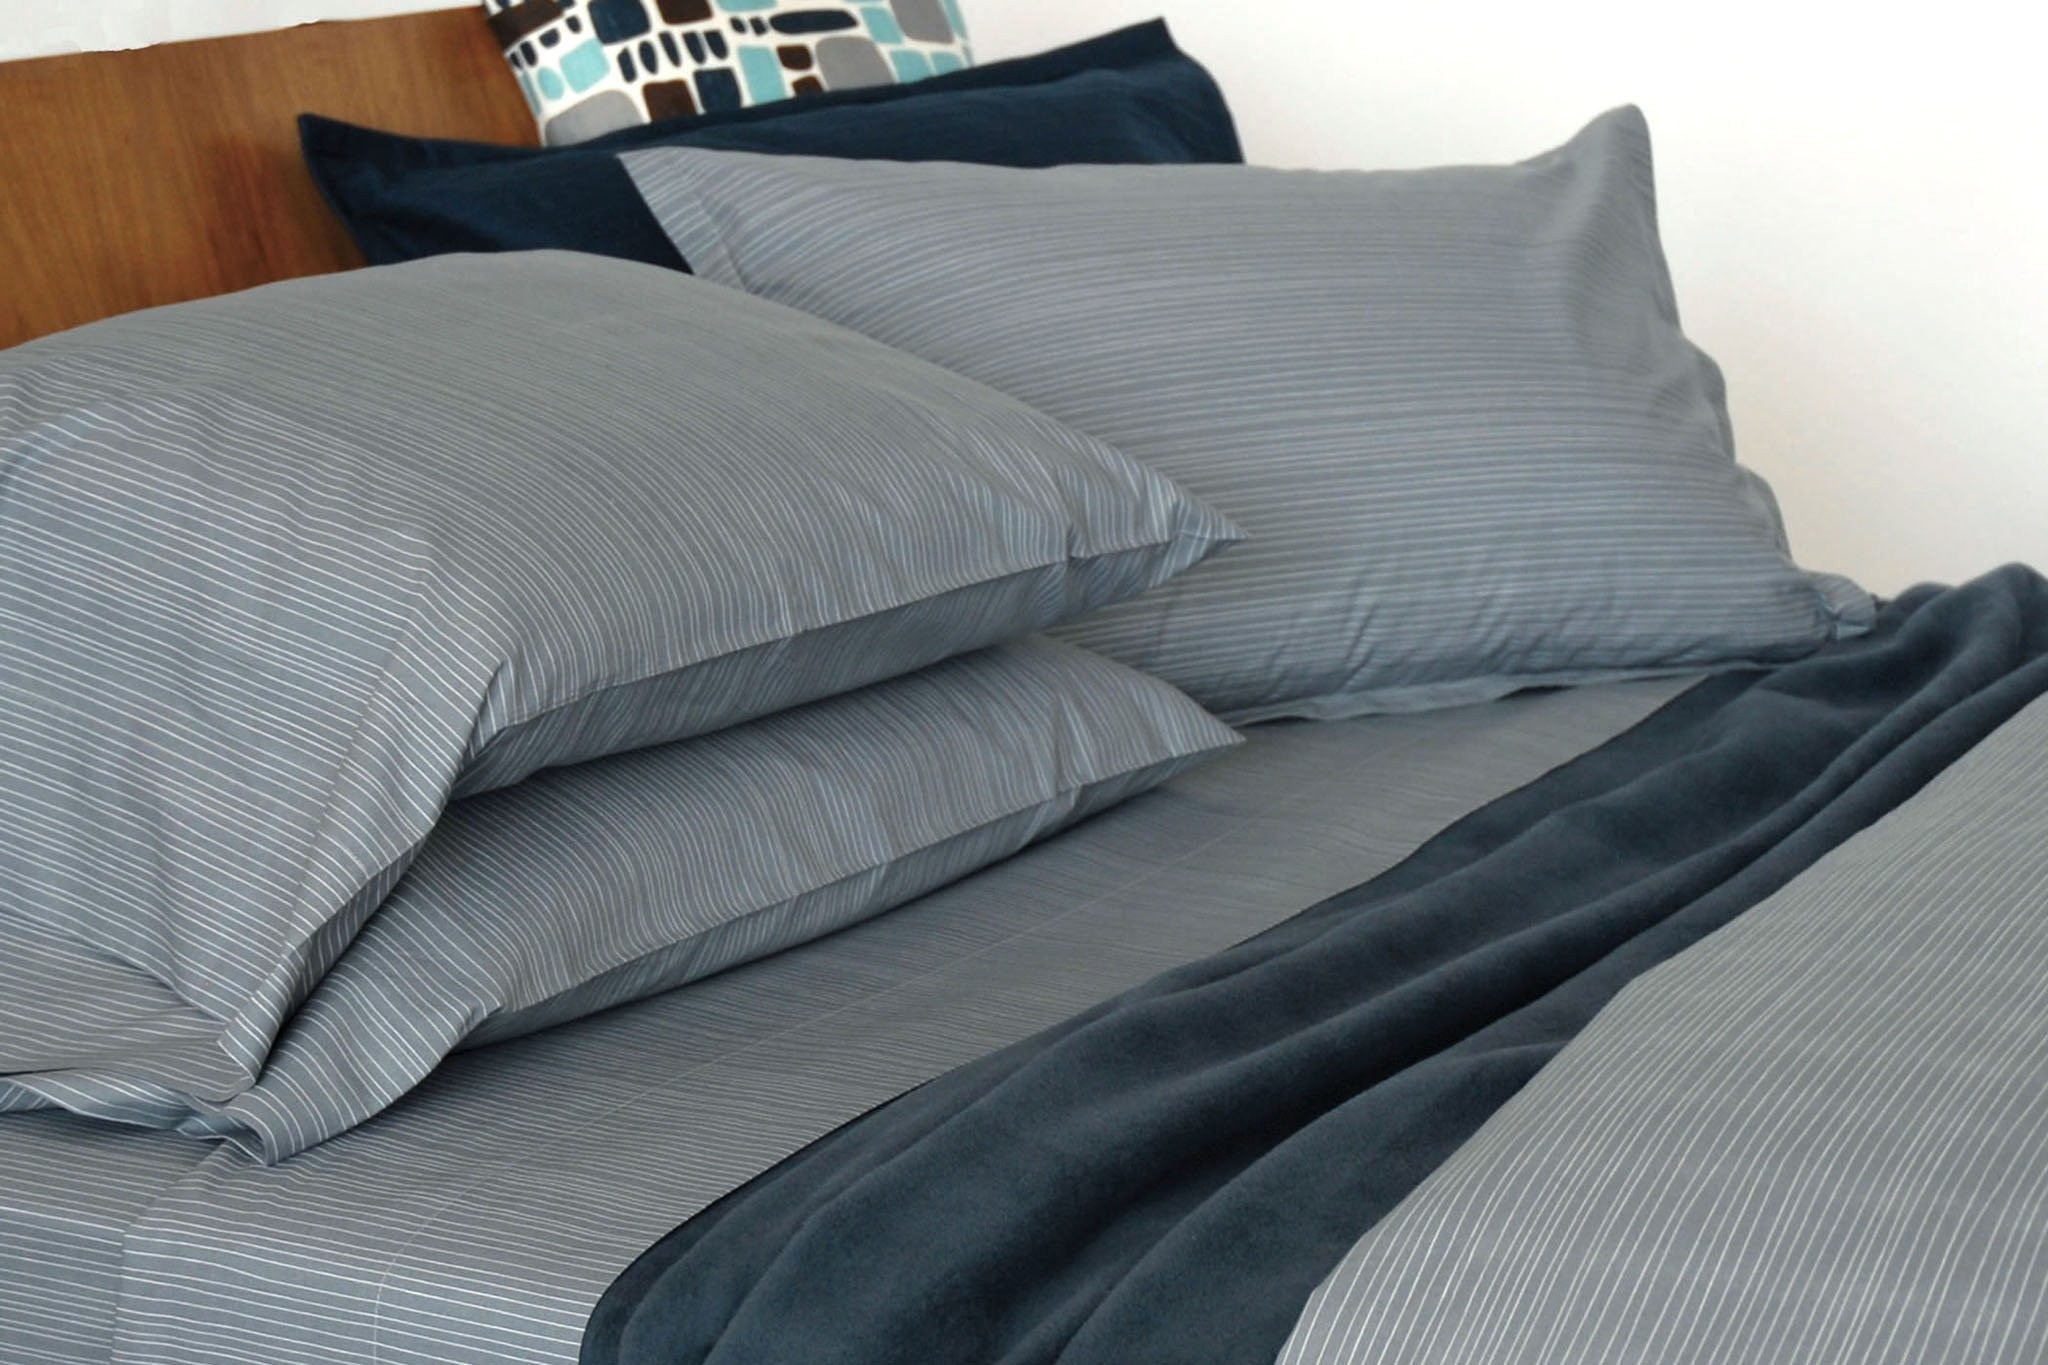 Area Bedding Oneway Duvet Cover